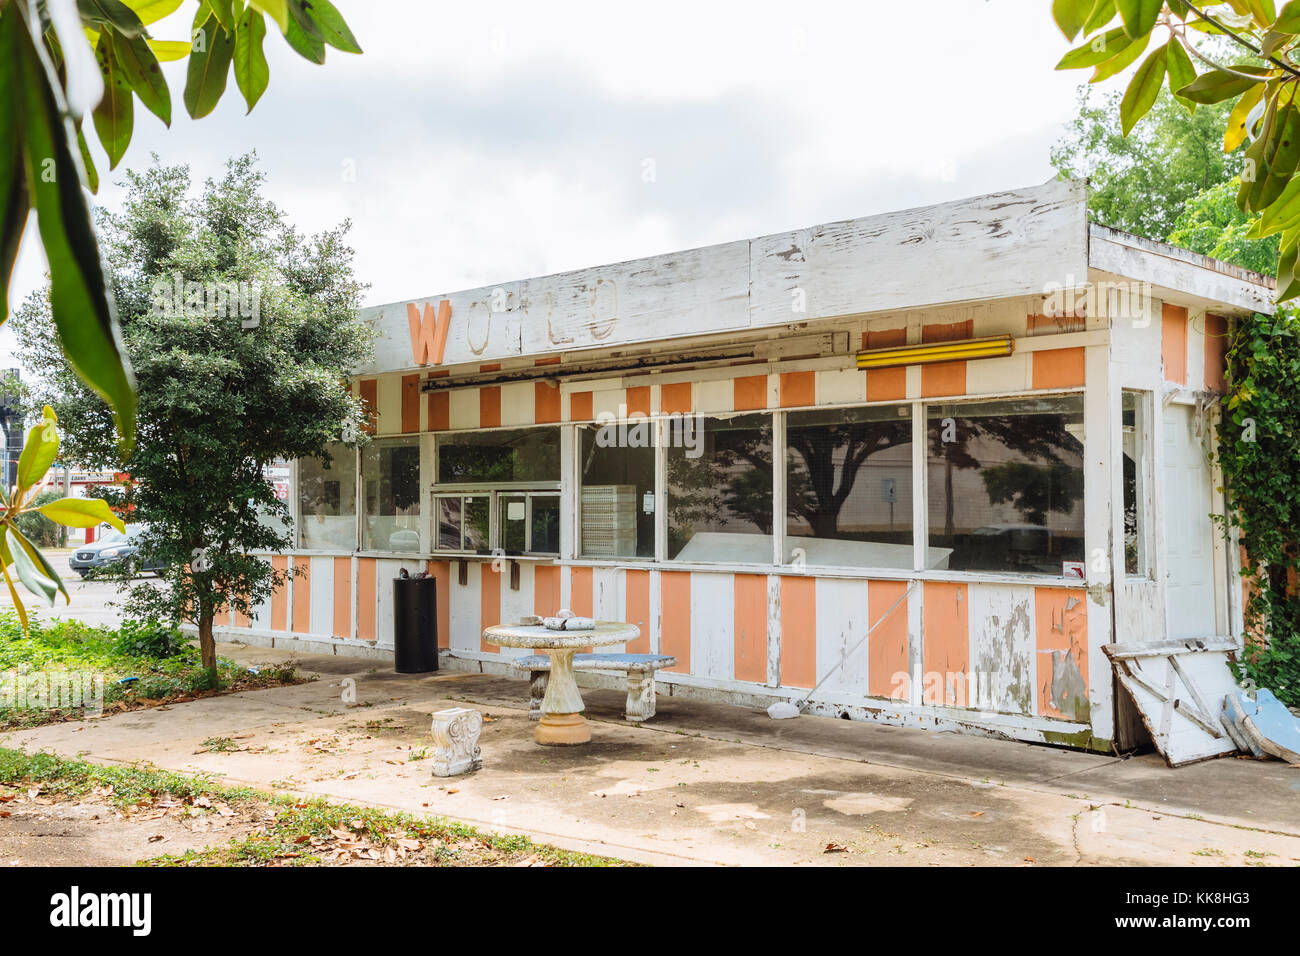 Closed and abandoned small business, donut shop, in Fort Walton Beach Florida, USA. - Stock Image